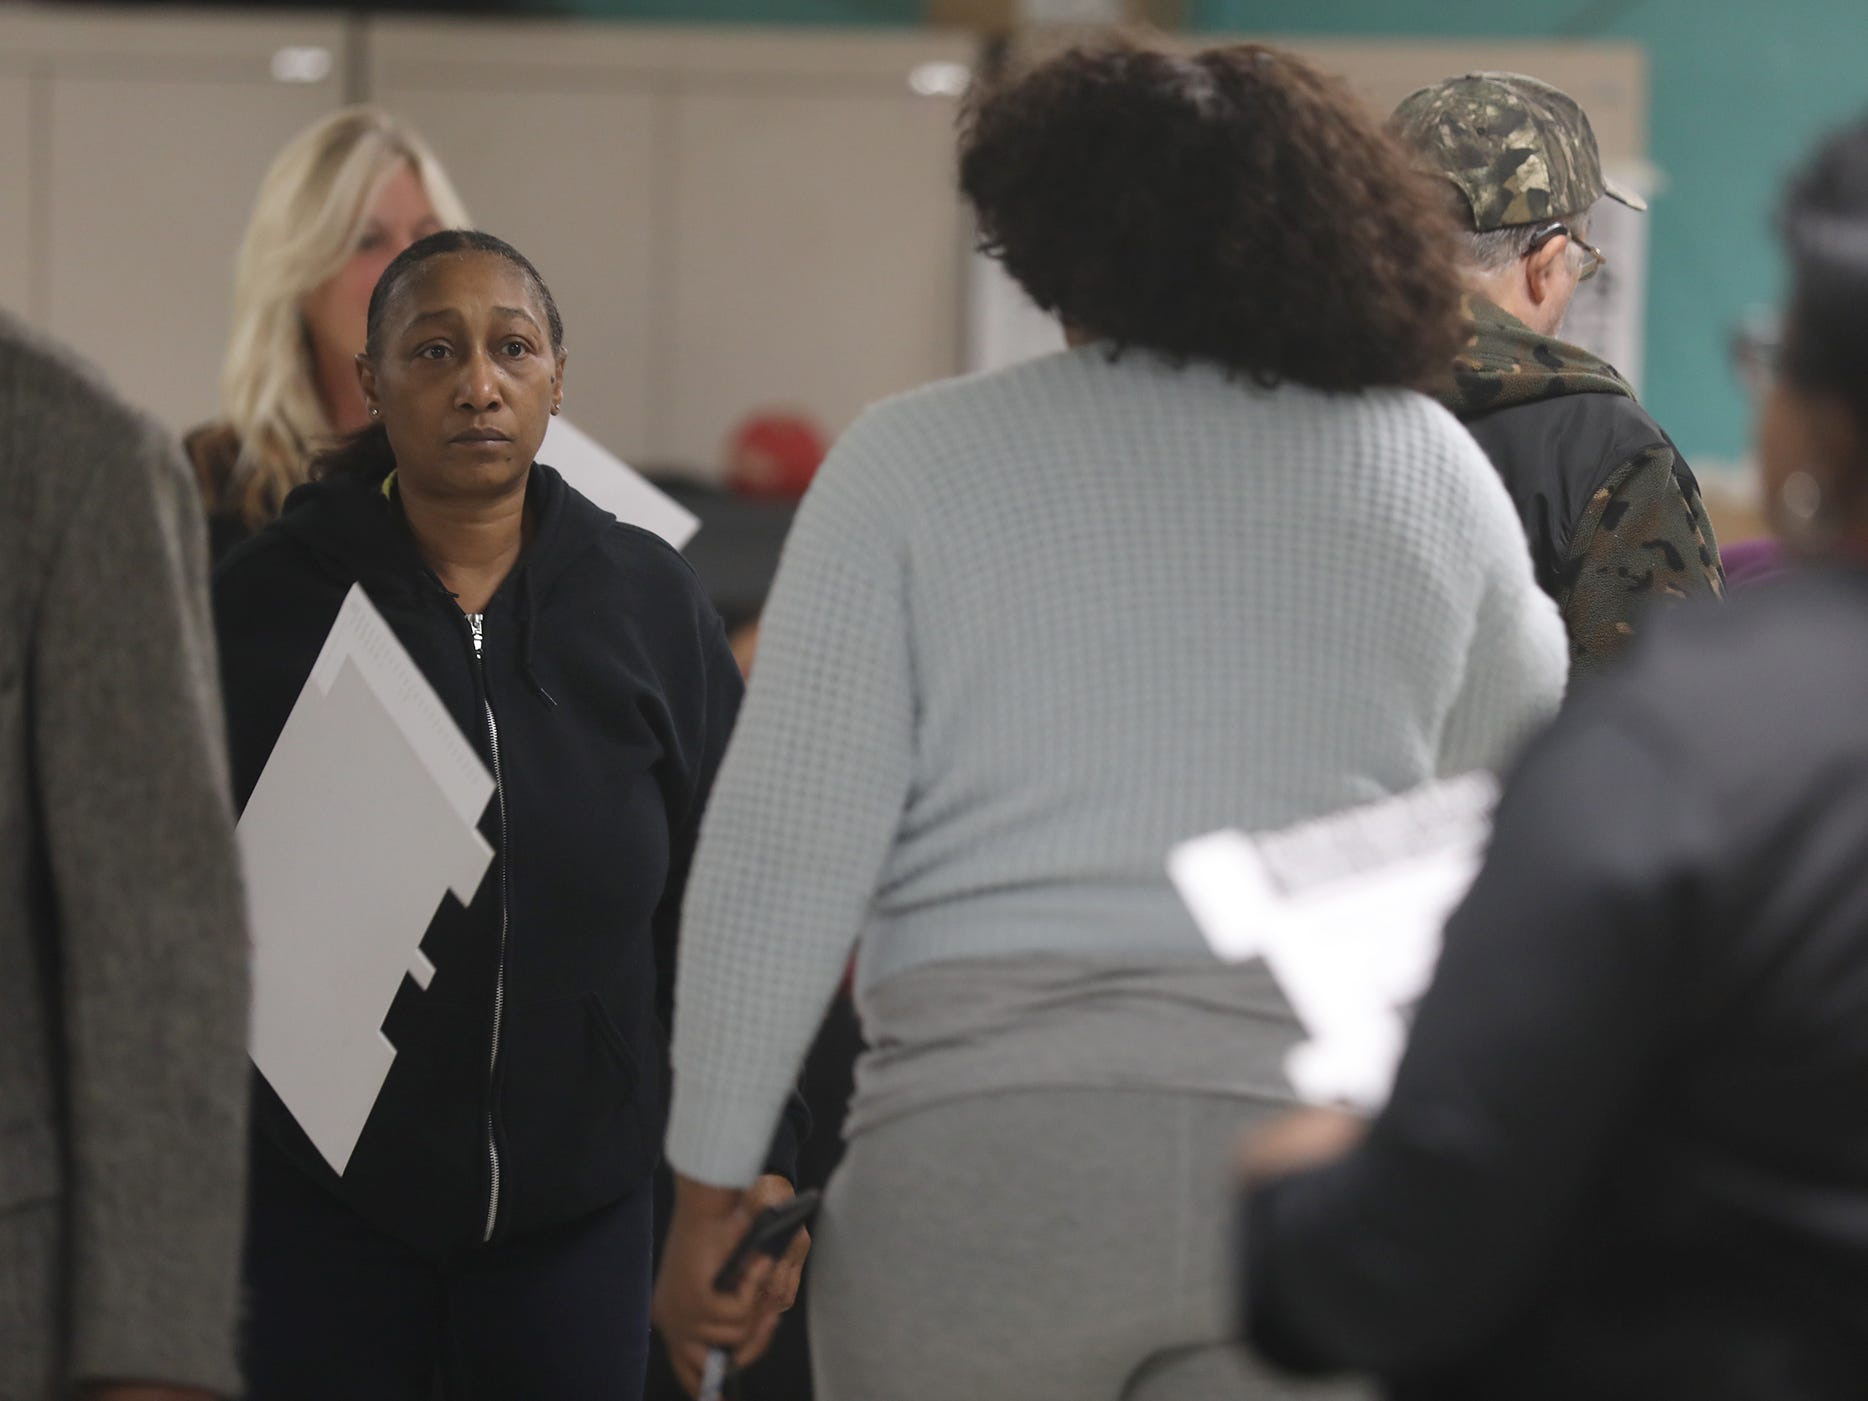 Sheila Parson of Rochester gets ready to step forward to cast her vote at Edgerton Center.